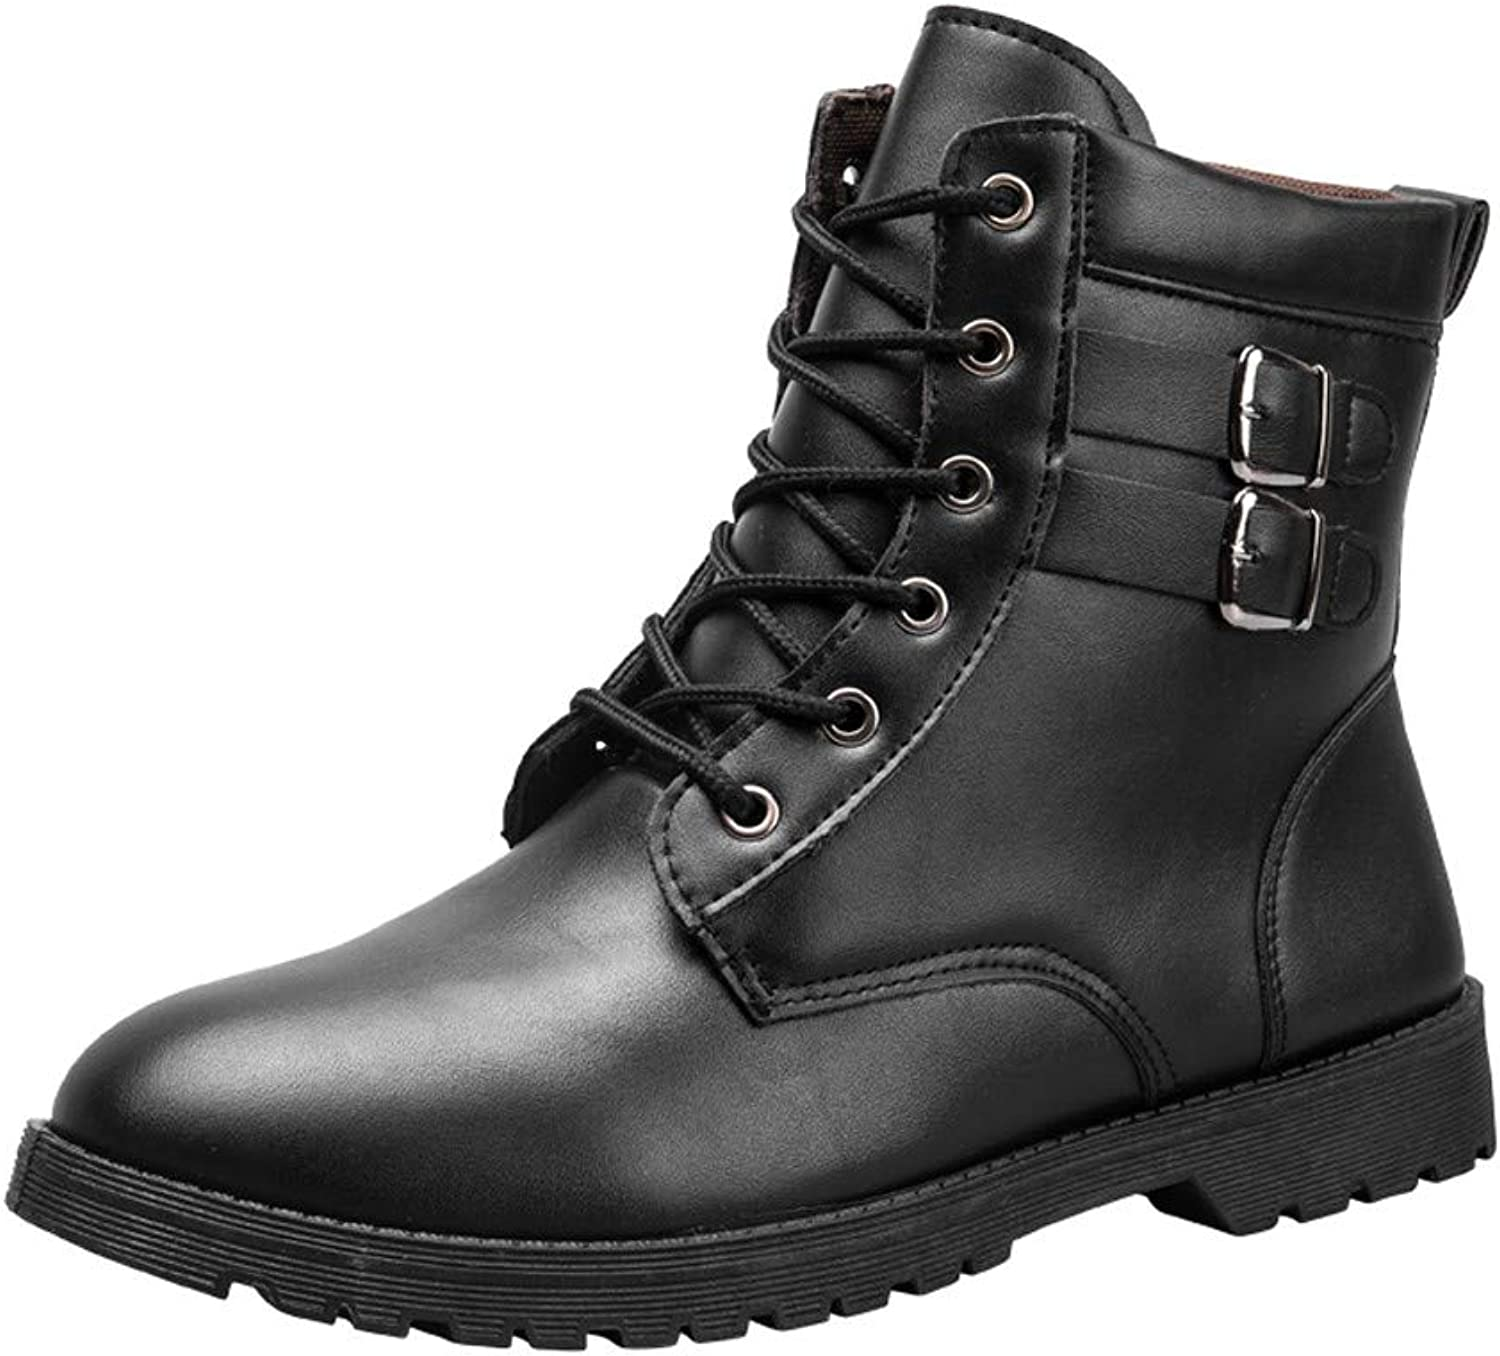 Fheaven Men Military Combat Boots Warm Winter Ankle Boots Lace up Buckled Strap Work Tooling Boots Yellow